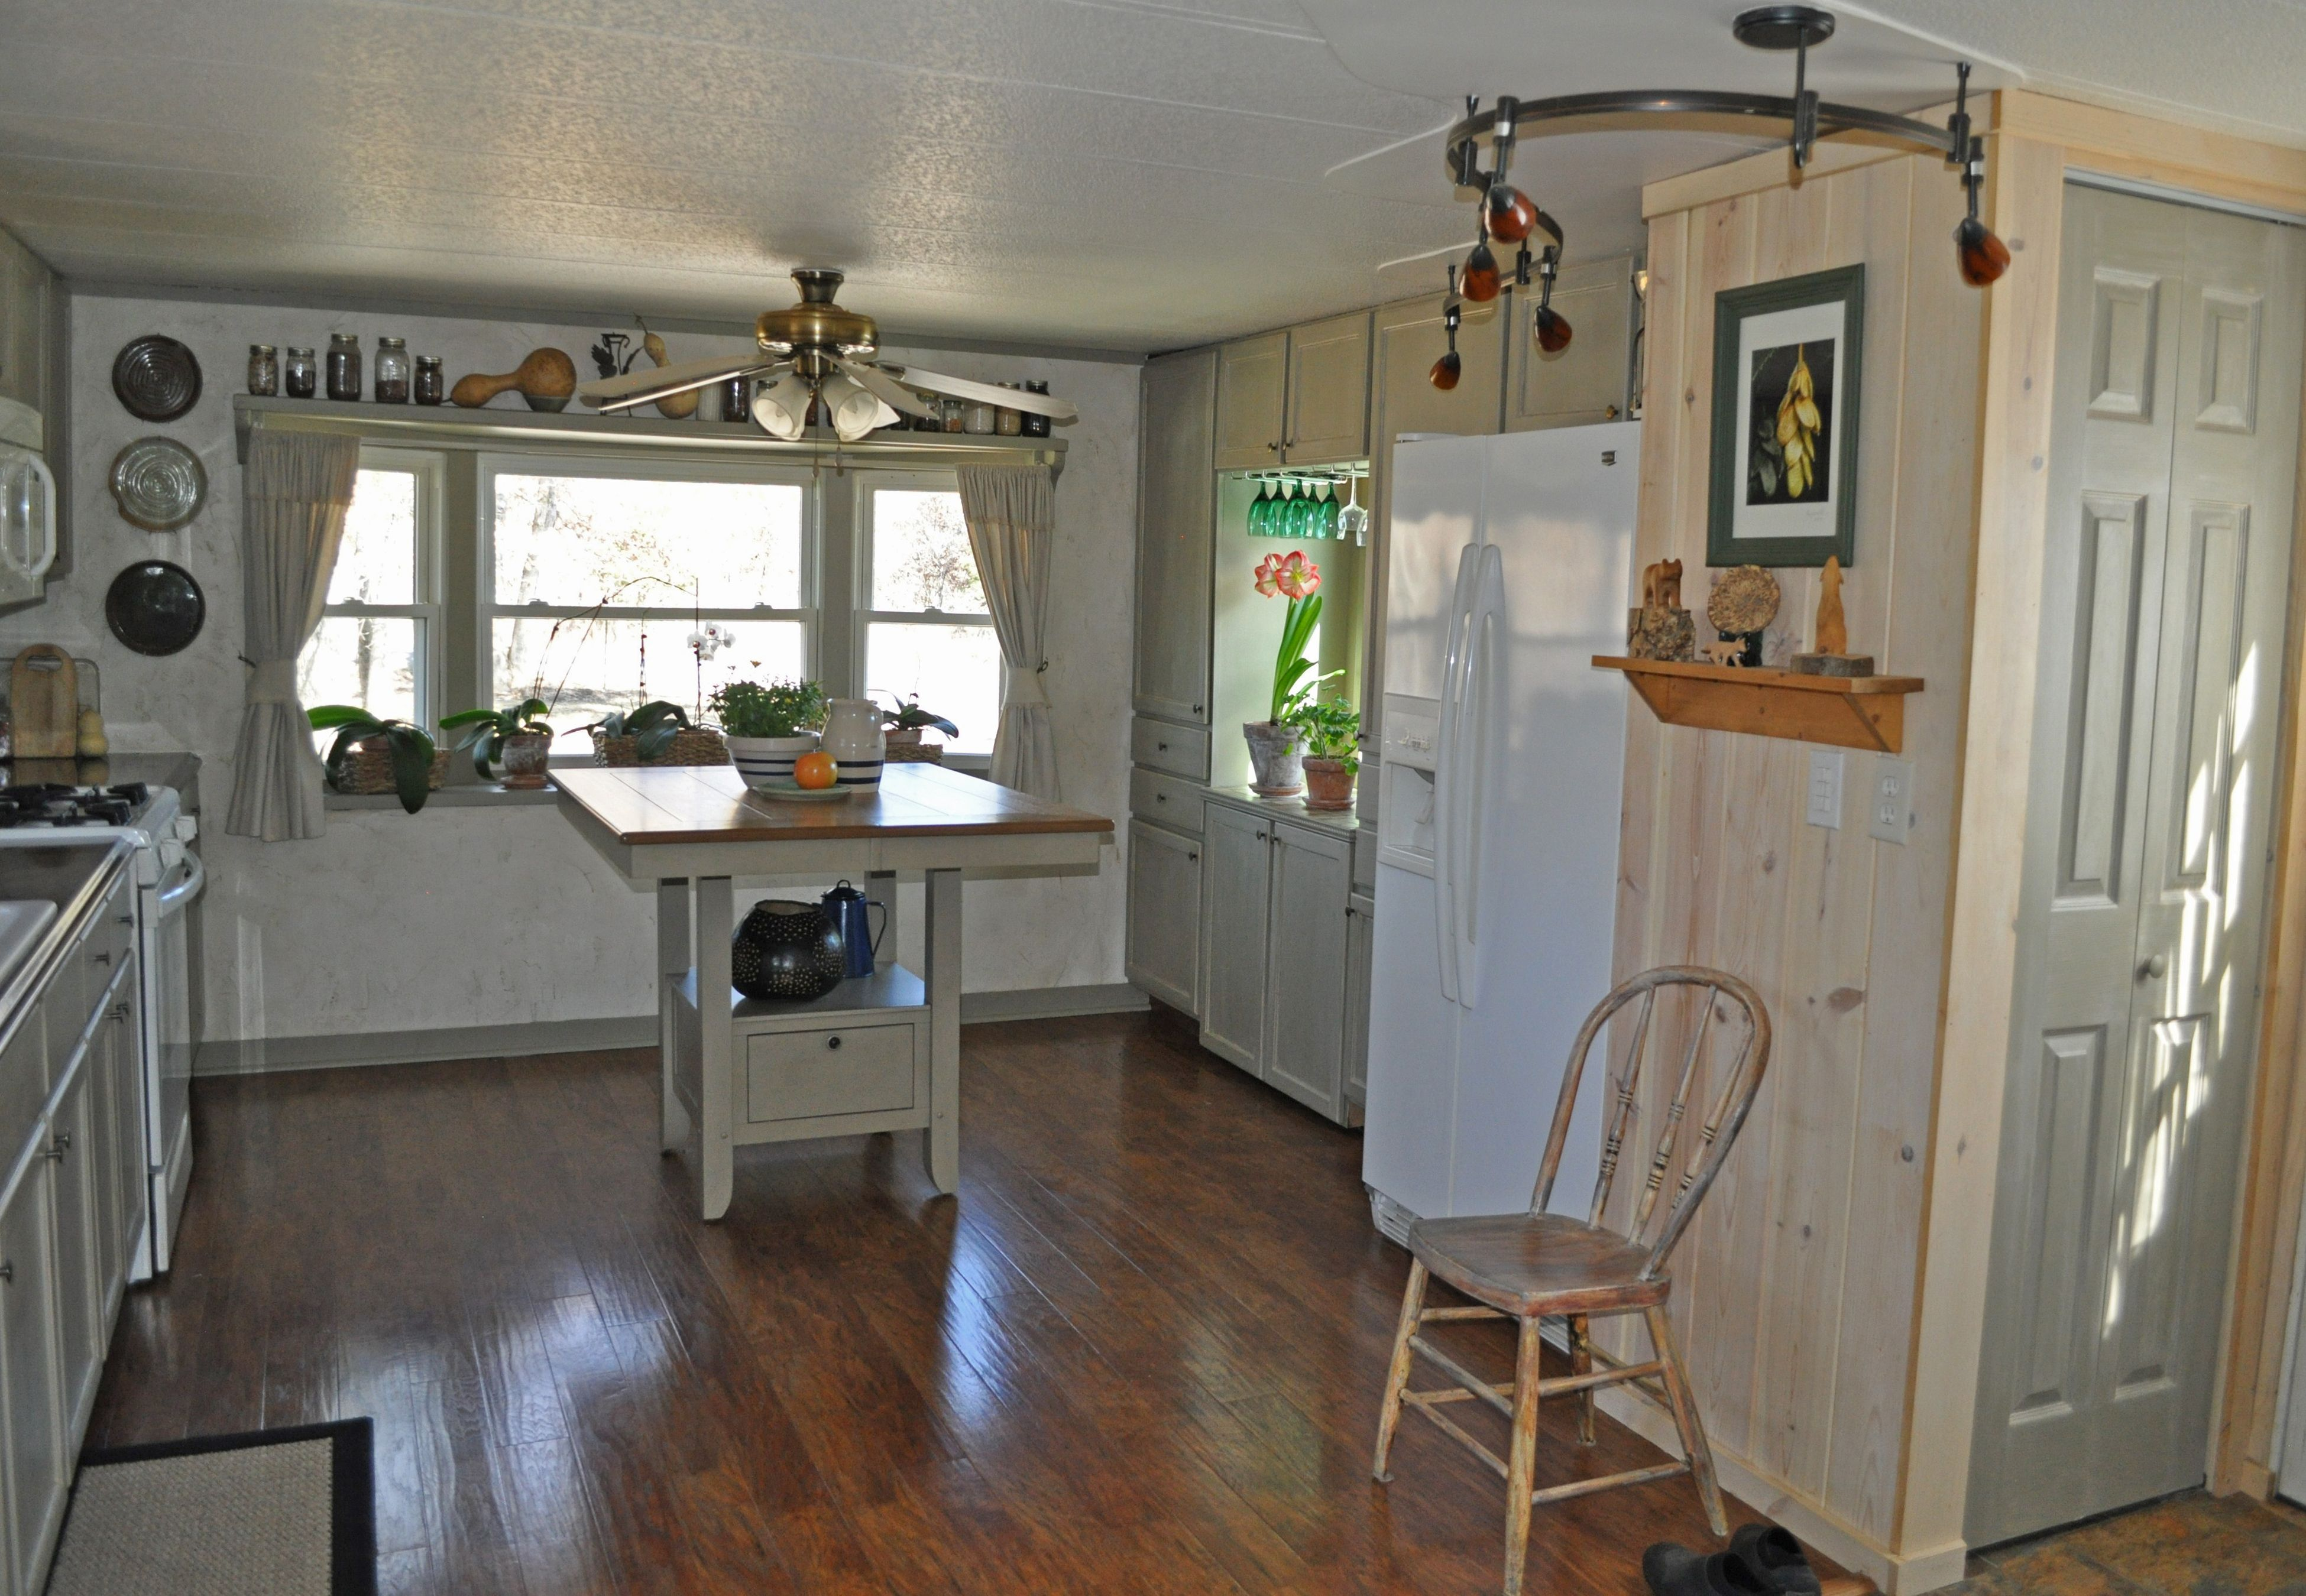 Best Single Wide Mobile Home Remodel Budget Makeover Kitchen 640 x 480